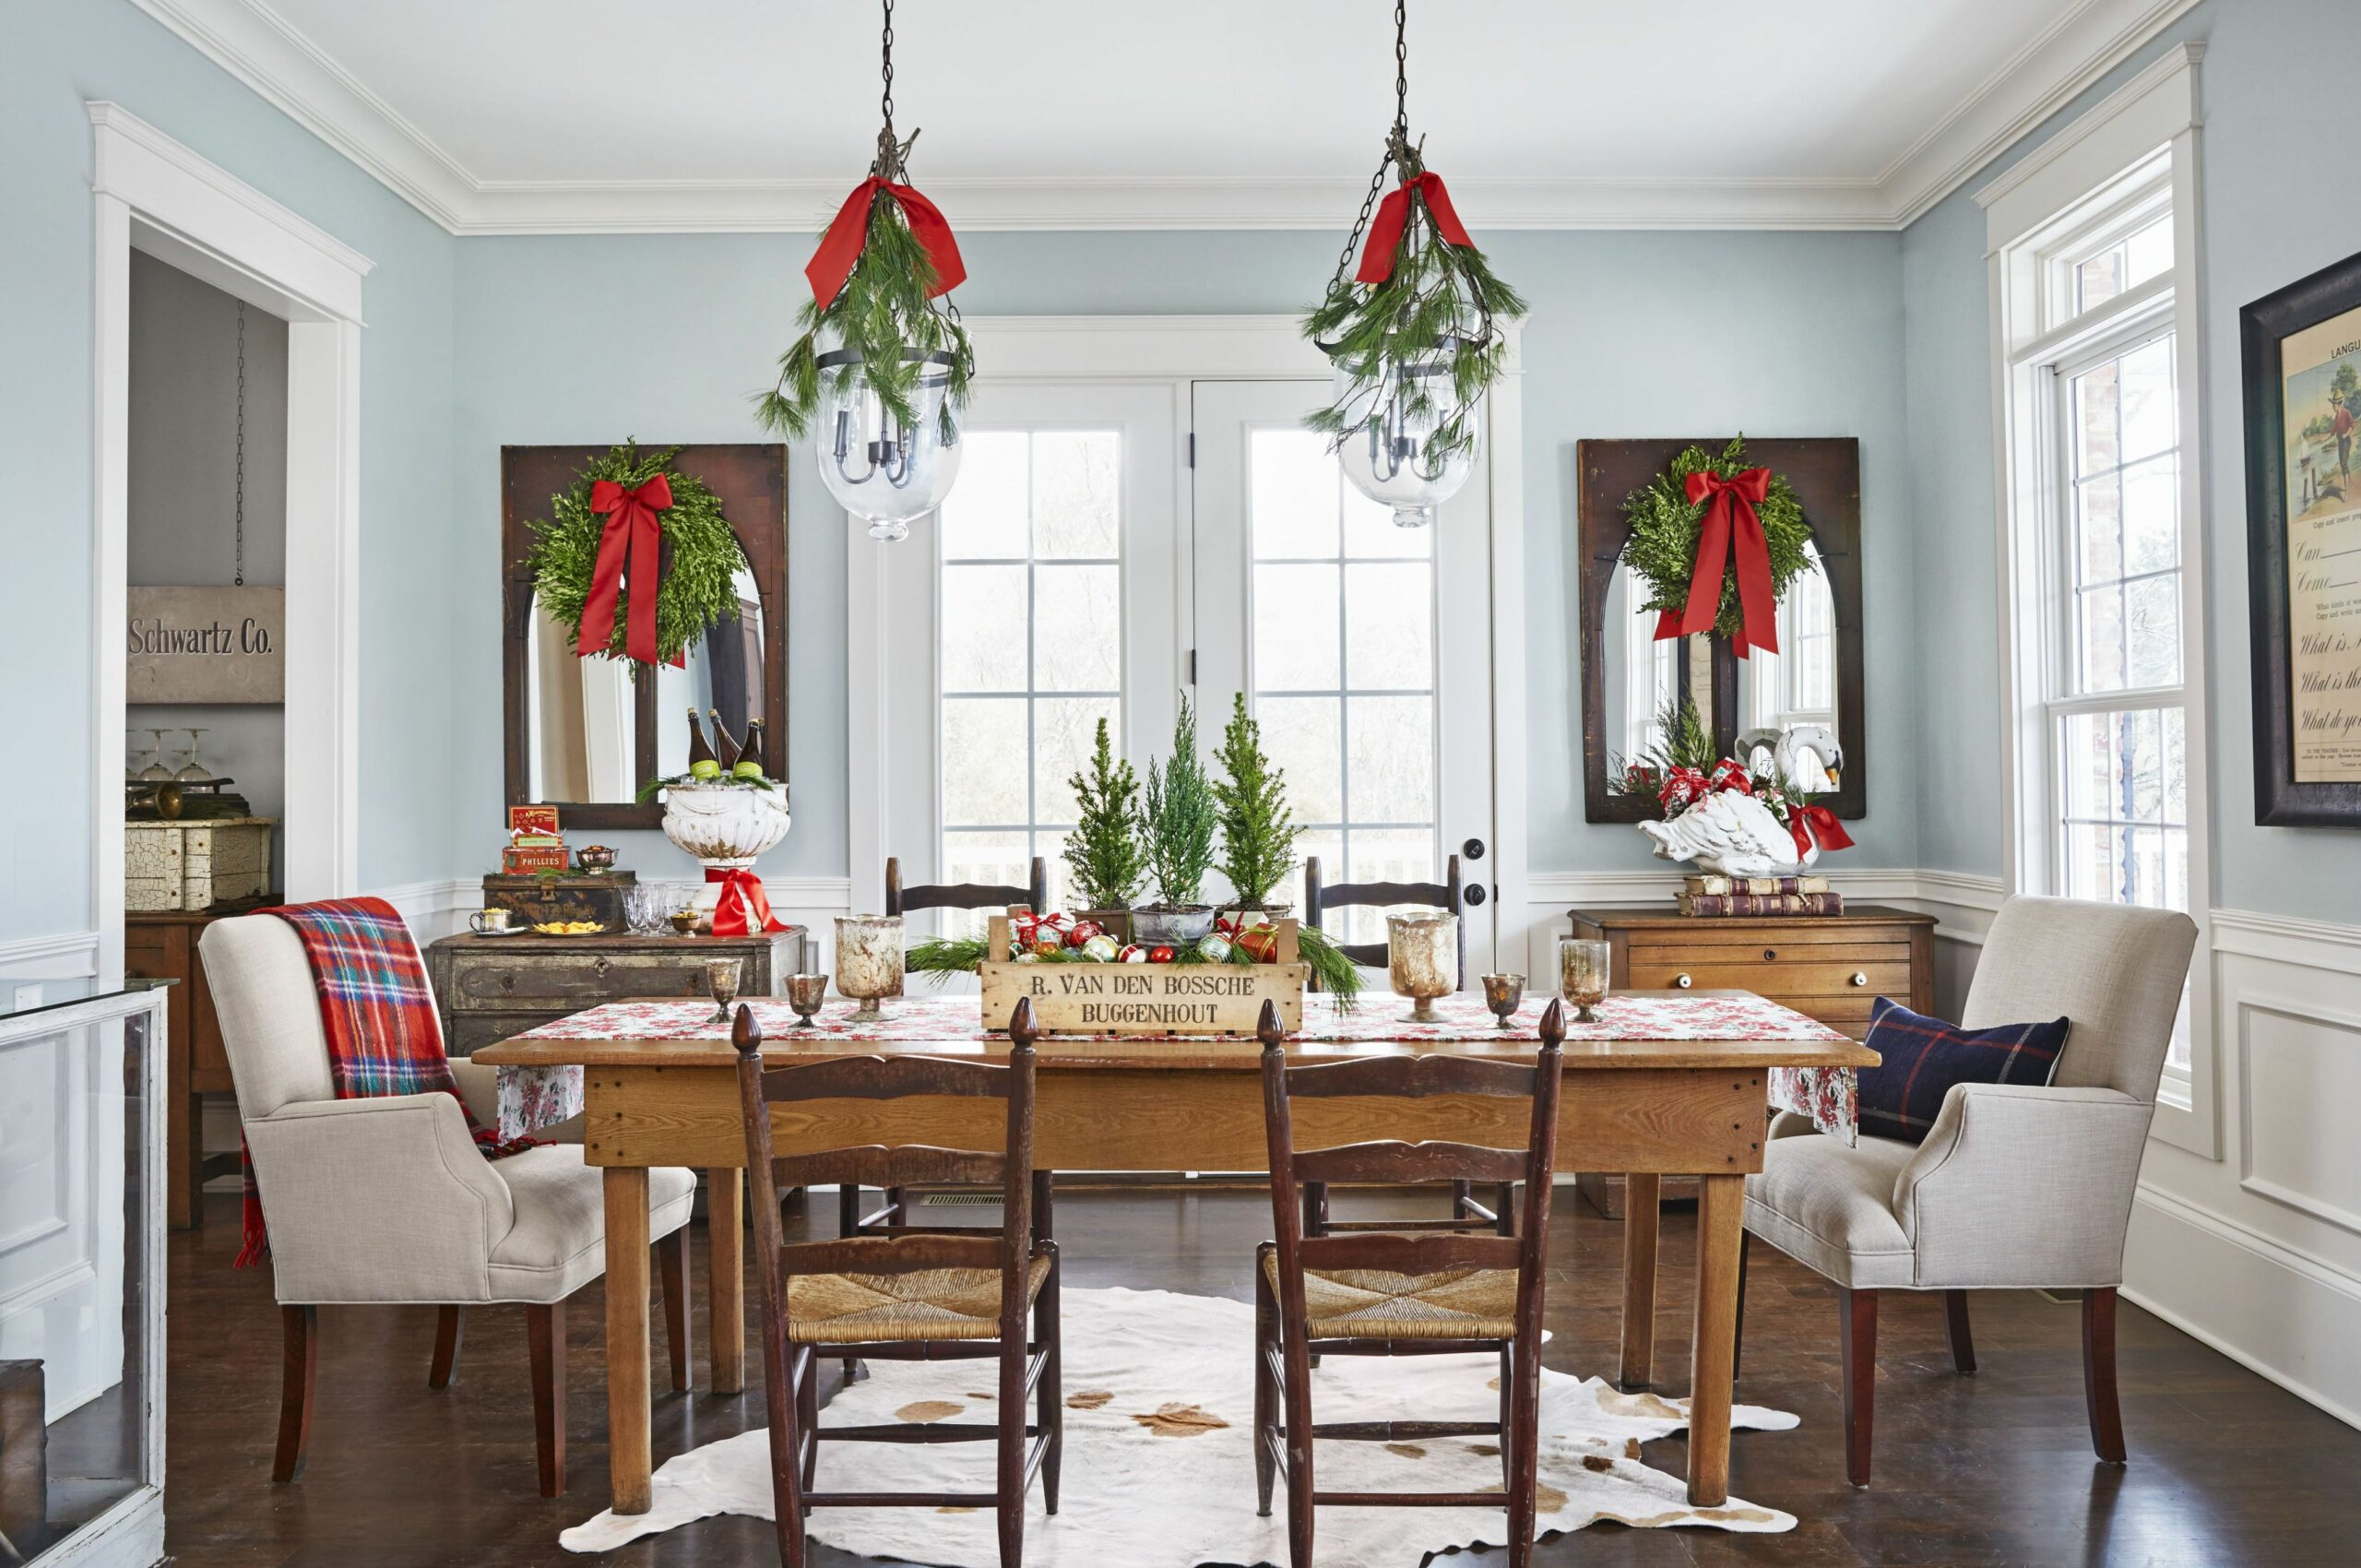 9 Best Christmas Table Settings - Decorations and Centerpiece ...